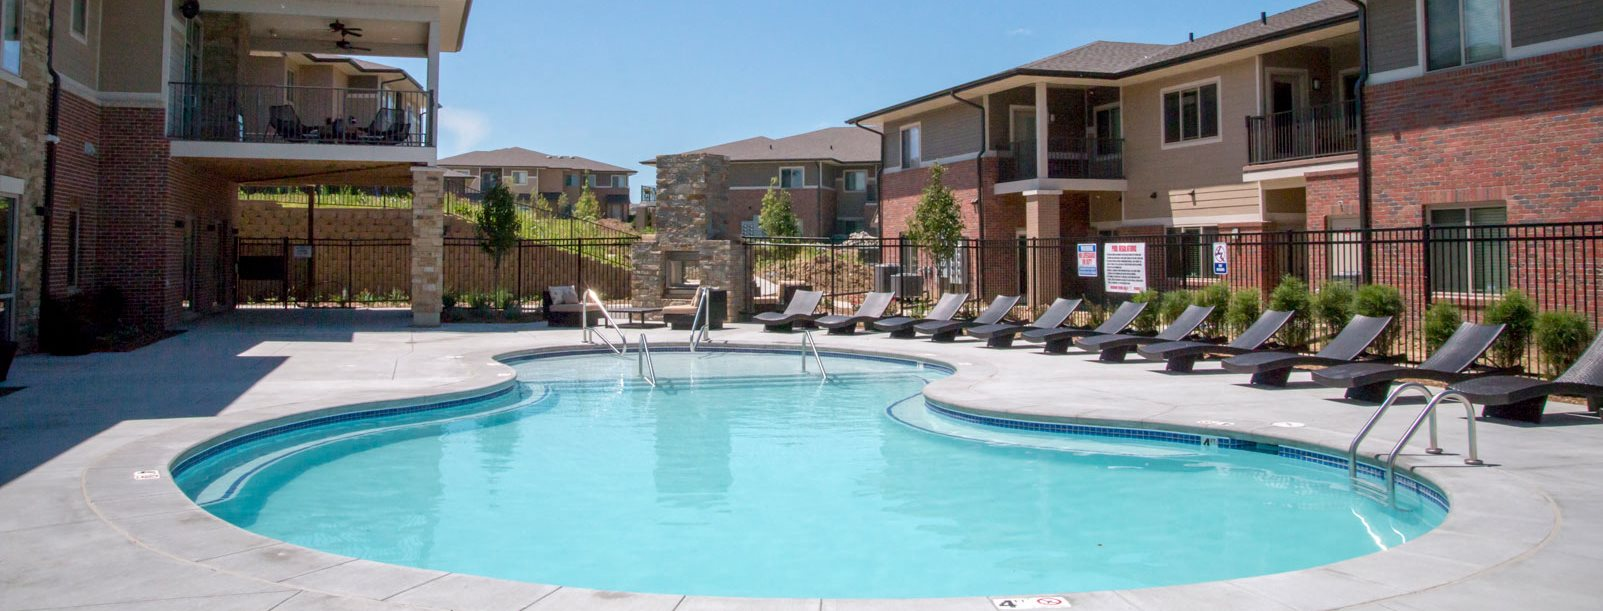 Villas Of Omaha At Butler Ridge Apartments Amp Townhomes